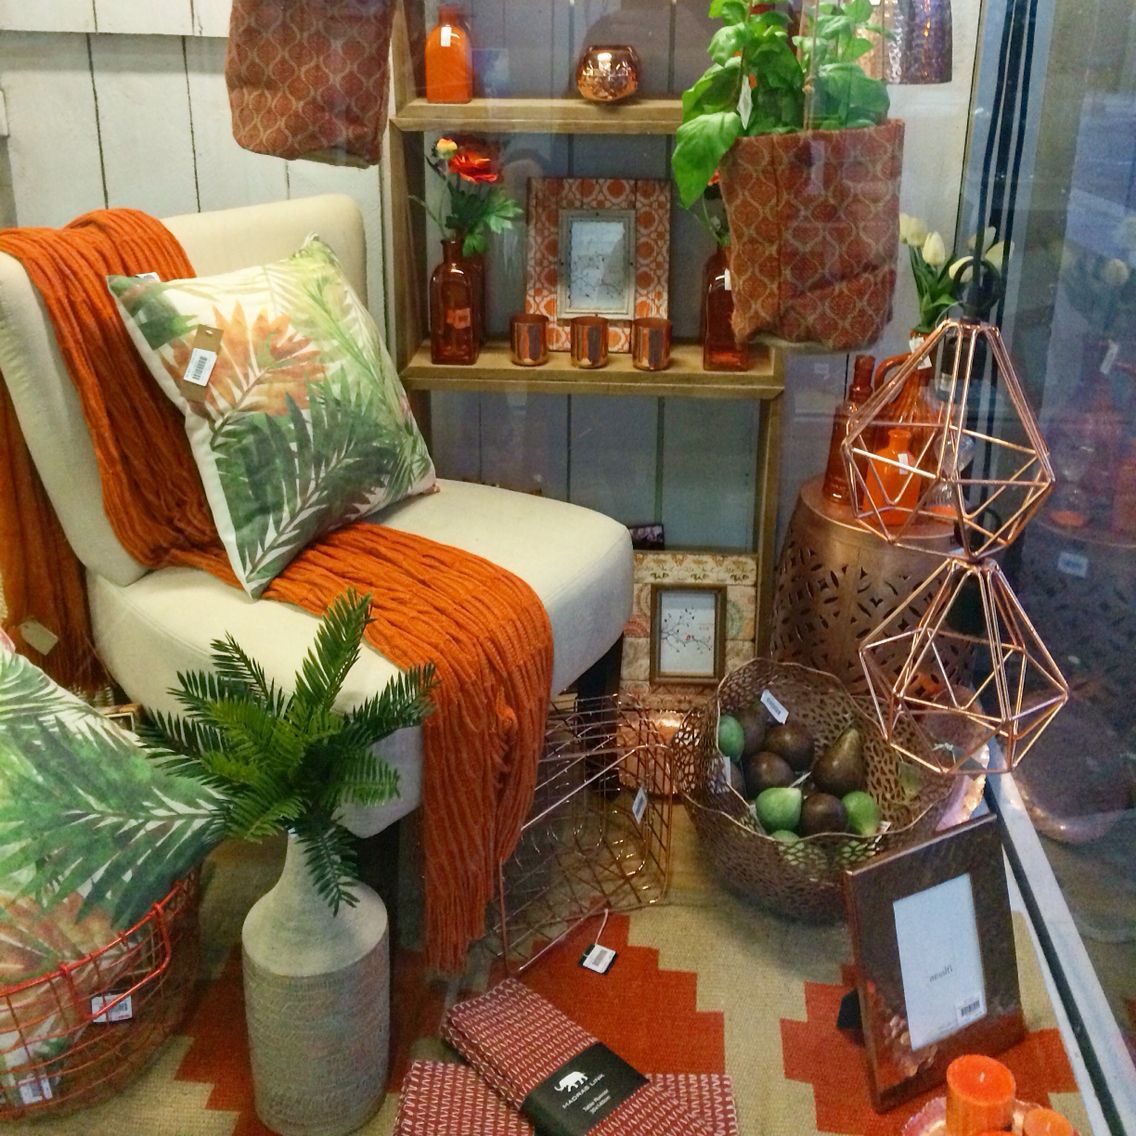 The Decorating Store: Orange And Copper Shop Display. New Window Display At